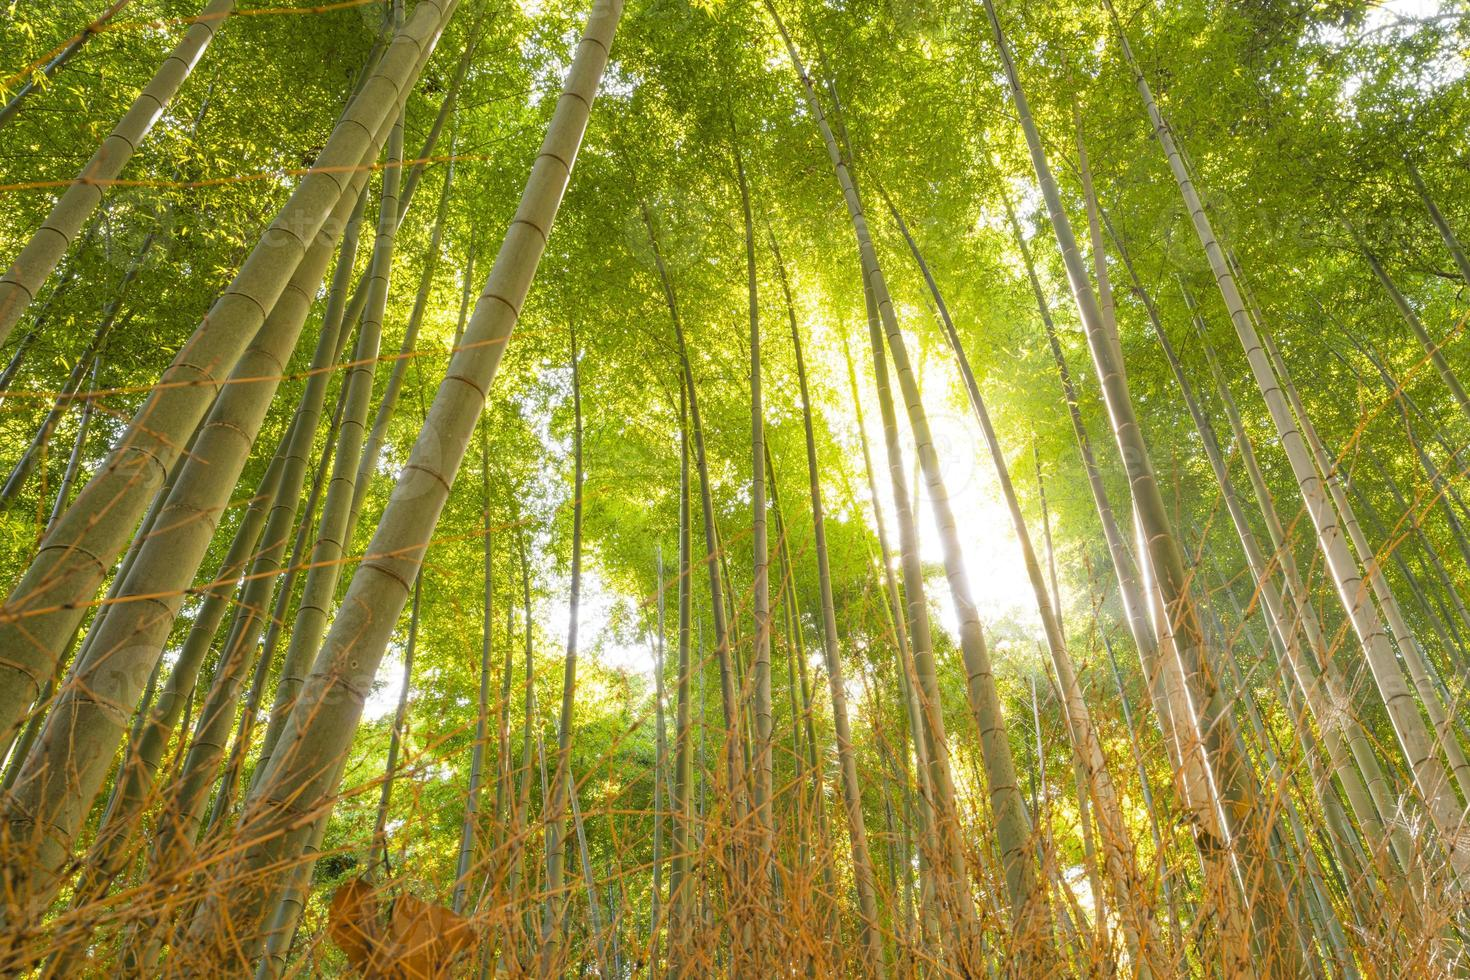 Bamboo Forest, Kyoto, Japan photo